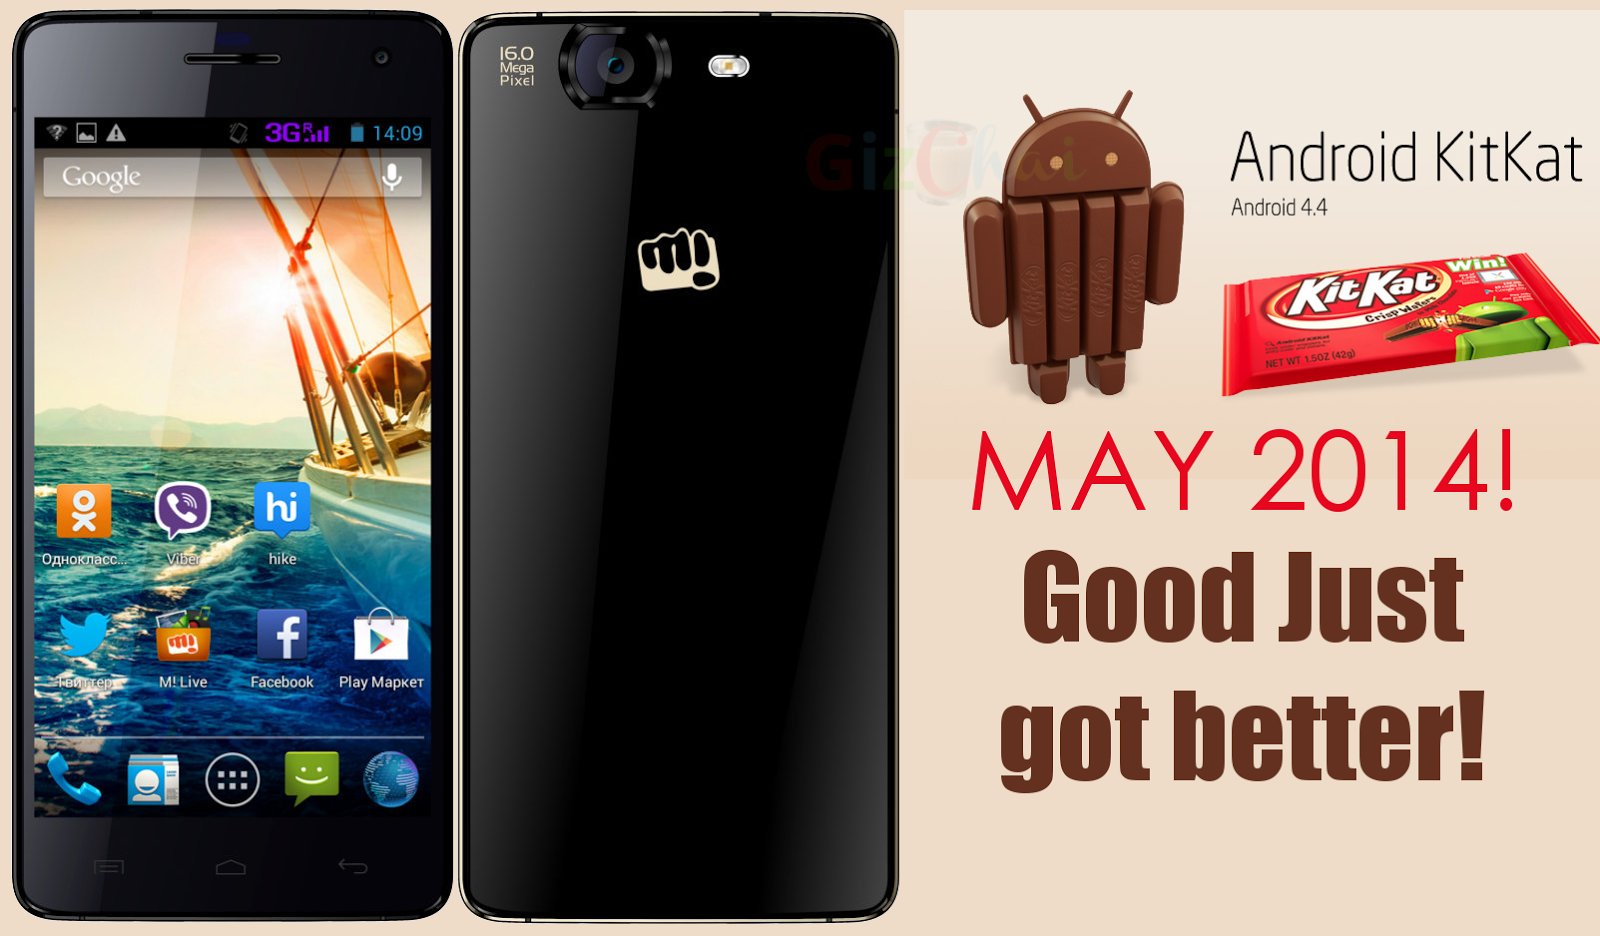 Phone Karbonn All Android Phone micromax gionee xolo karbonn and all mediatek running phones will get android 4 kitkat by may 2014